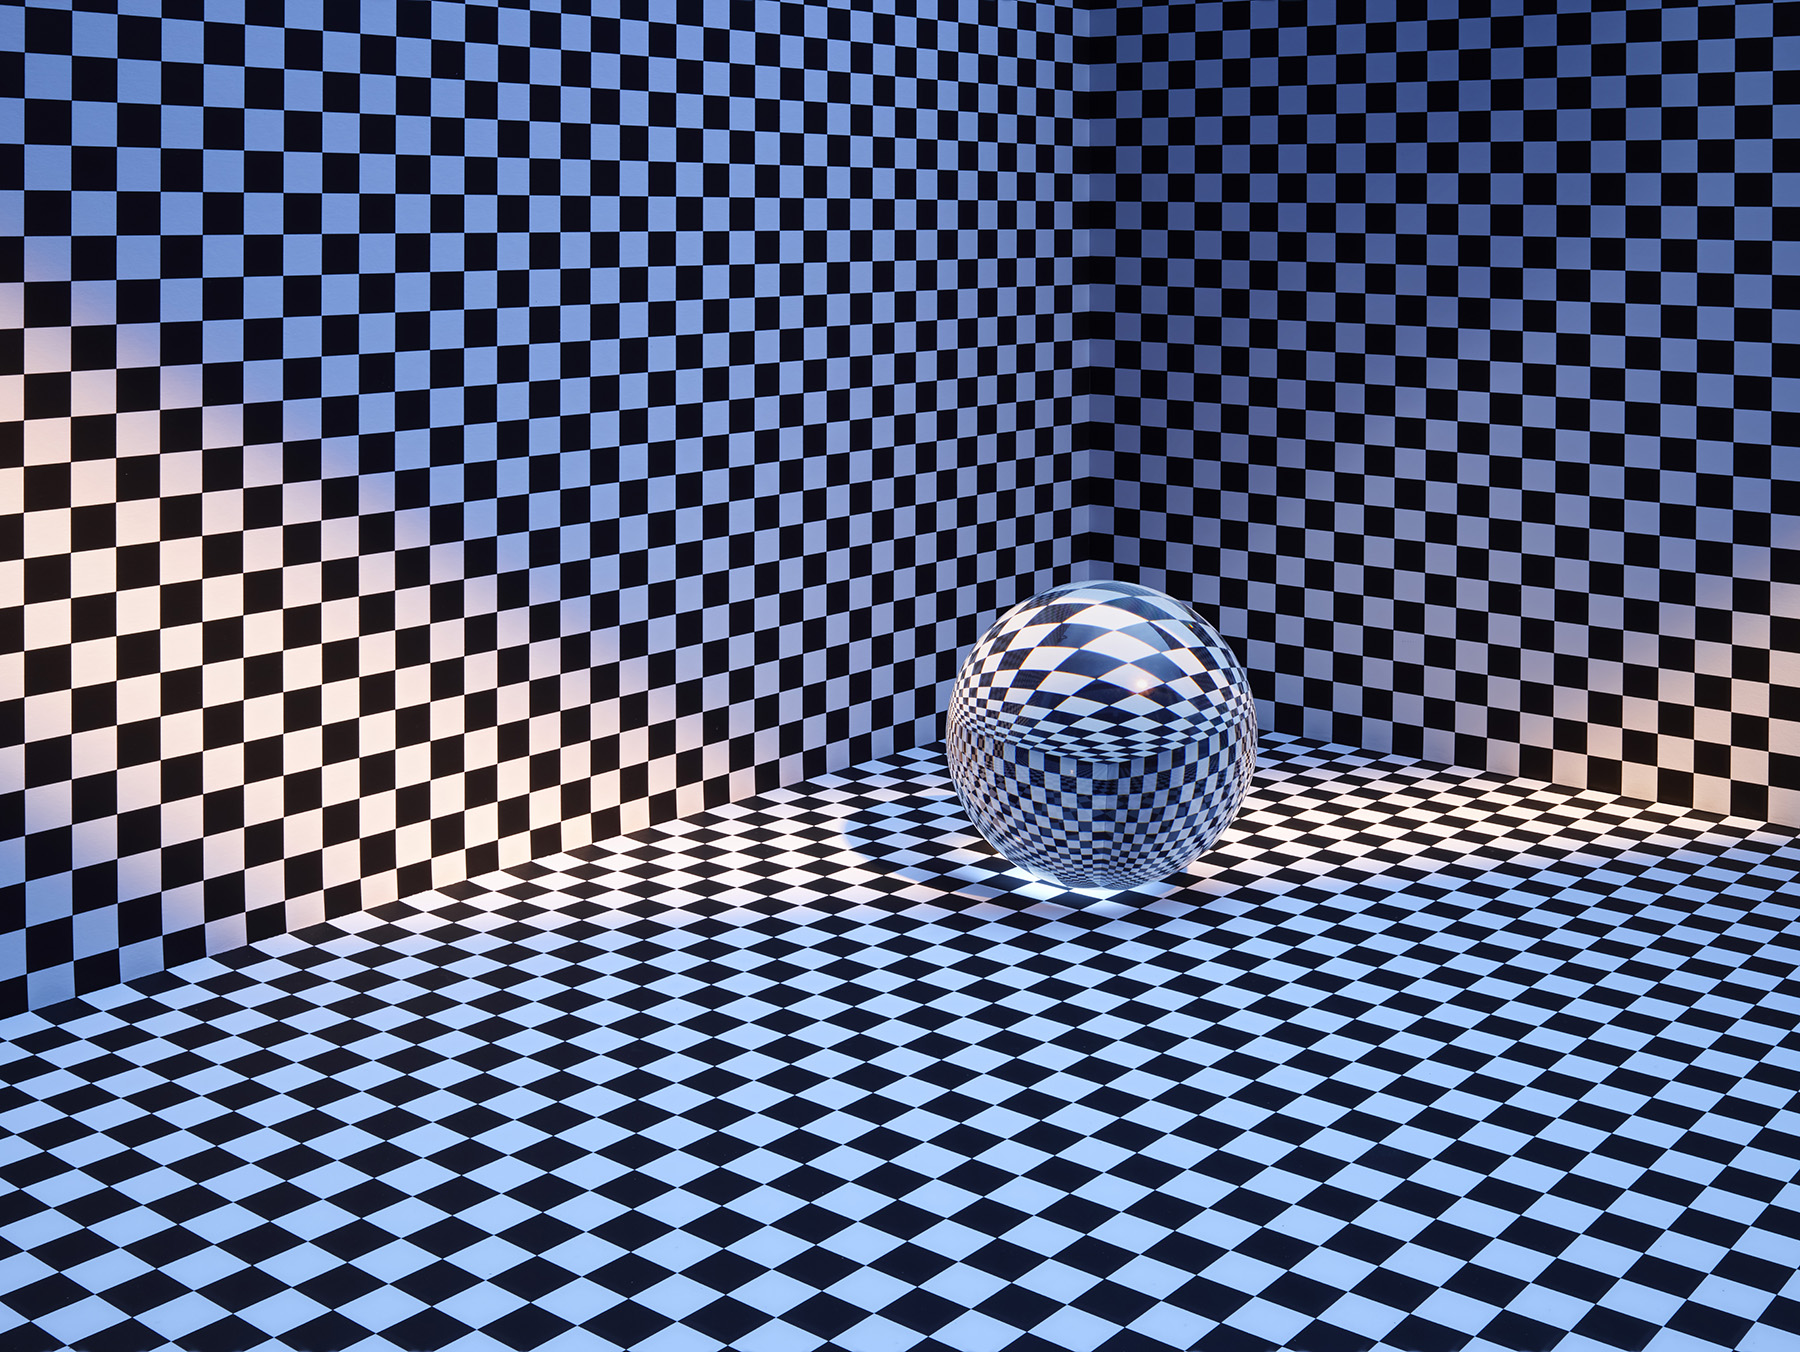 Stripe Ball B.jpg